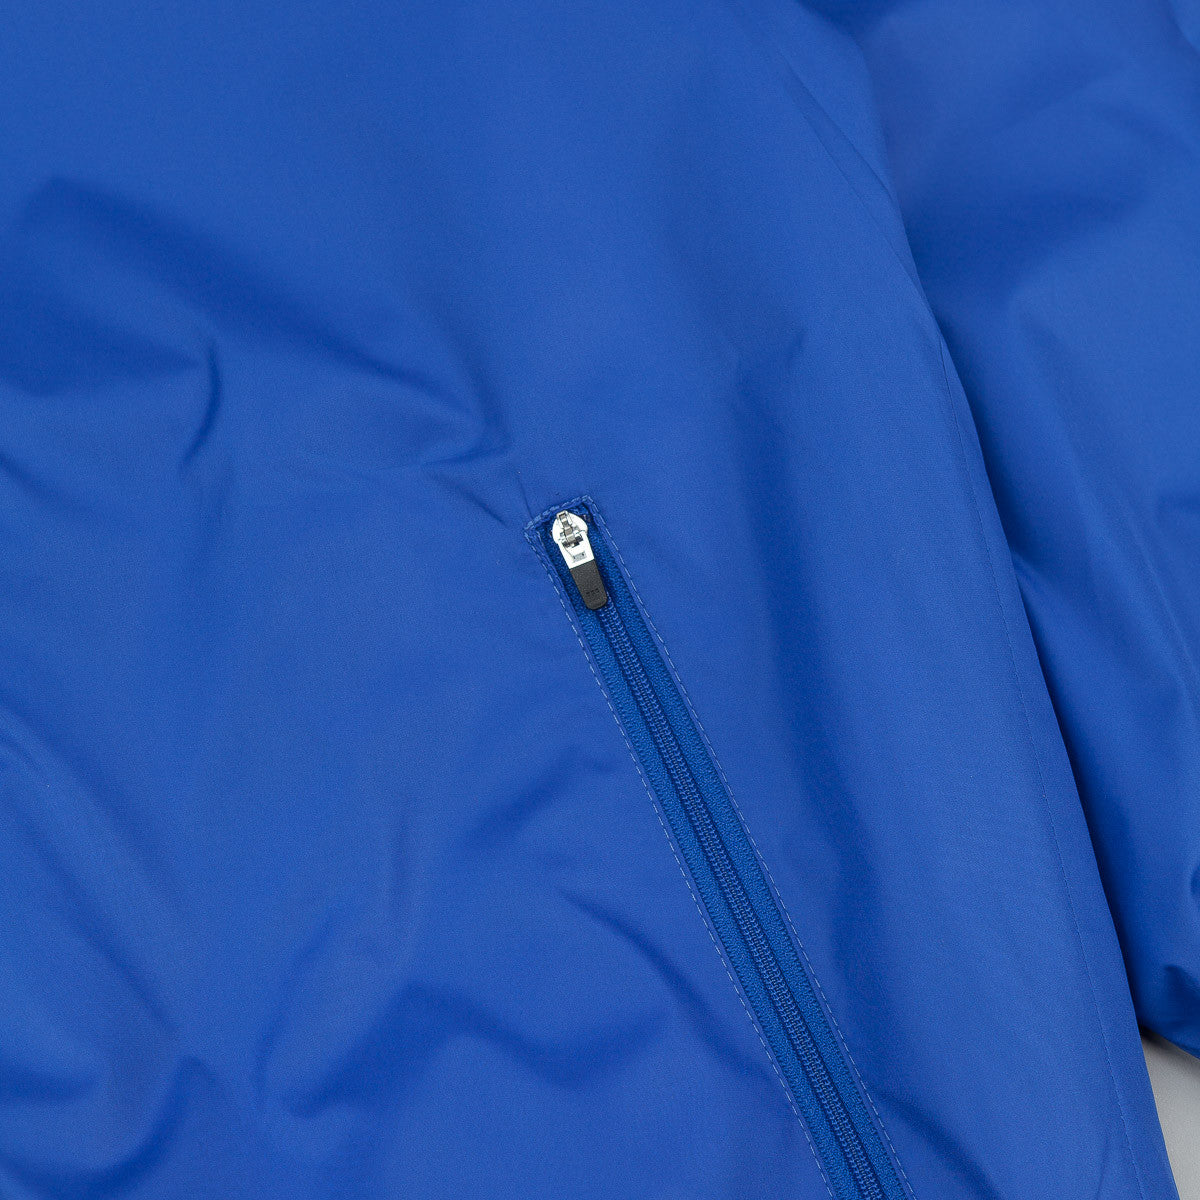 Polar Fill Logo Chest Windbreaker Jacket - Royal Blue / White